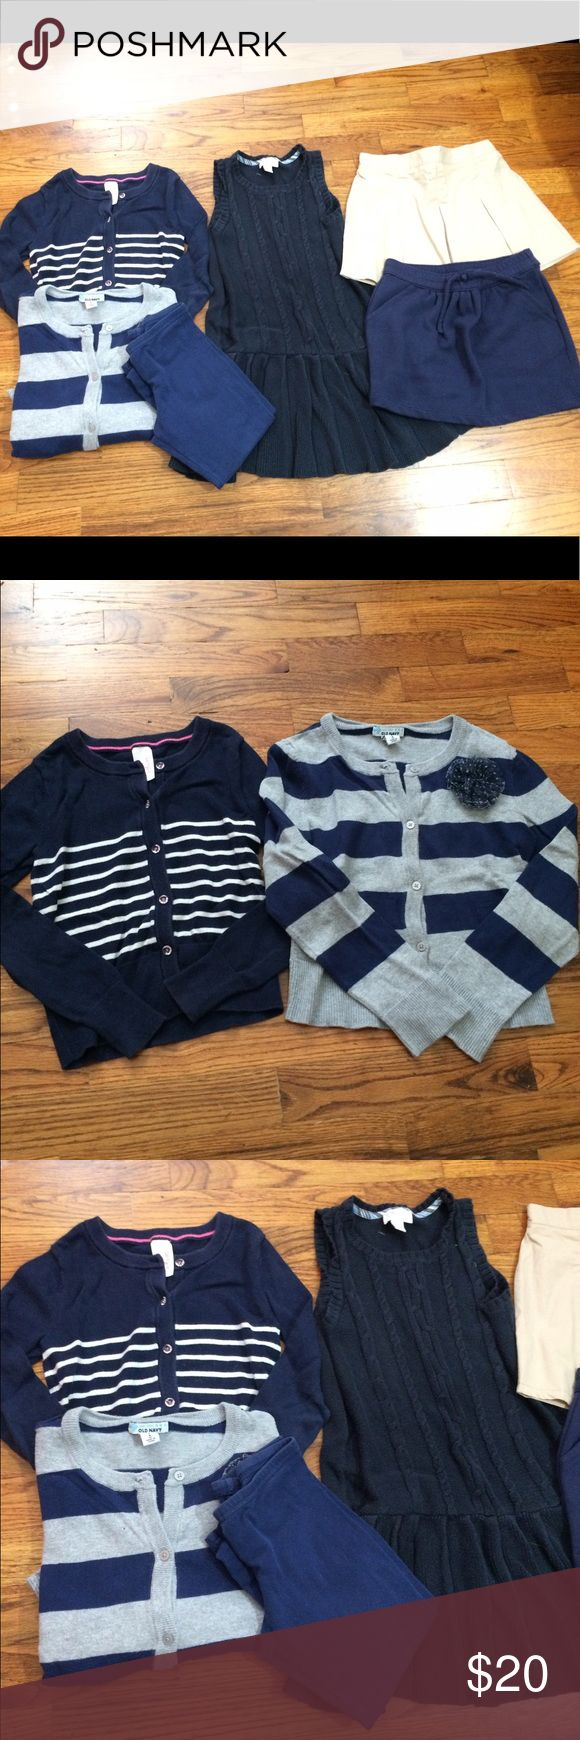 Girls School Uniform Bundle Girls navy and khaki school uniform bundle. All sized 6-6x. Gymboree navy pull on skirt, khaki Pleated Skort by Tough Skins, Knit long jumper from Children's Place, two sweaters- Old Navy and Cat & Jack, navy legging from old navy. All in great shape with no stains or holes. No missing buttons. Just outgrown! Gymboree Matching Sets